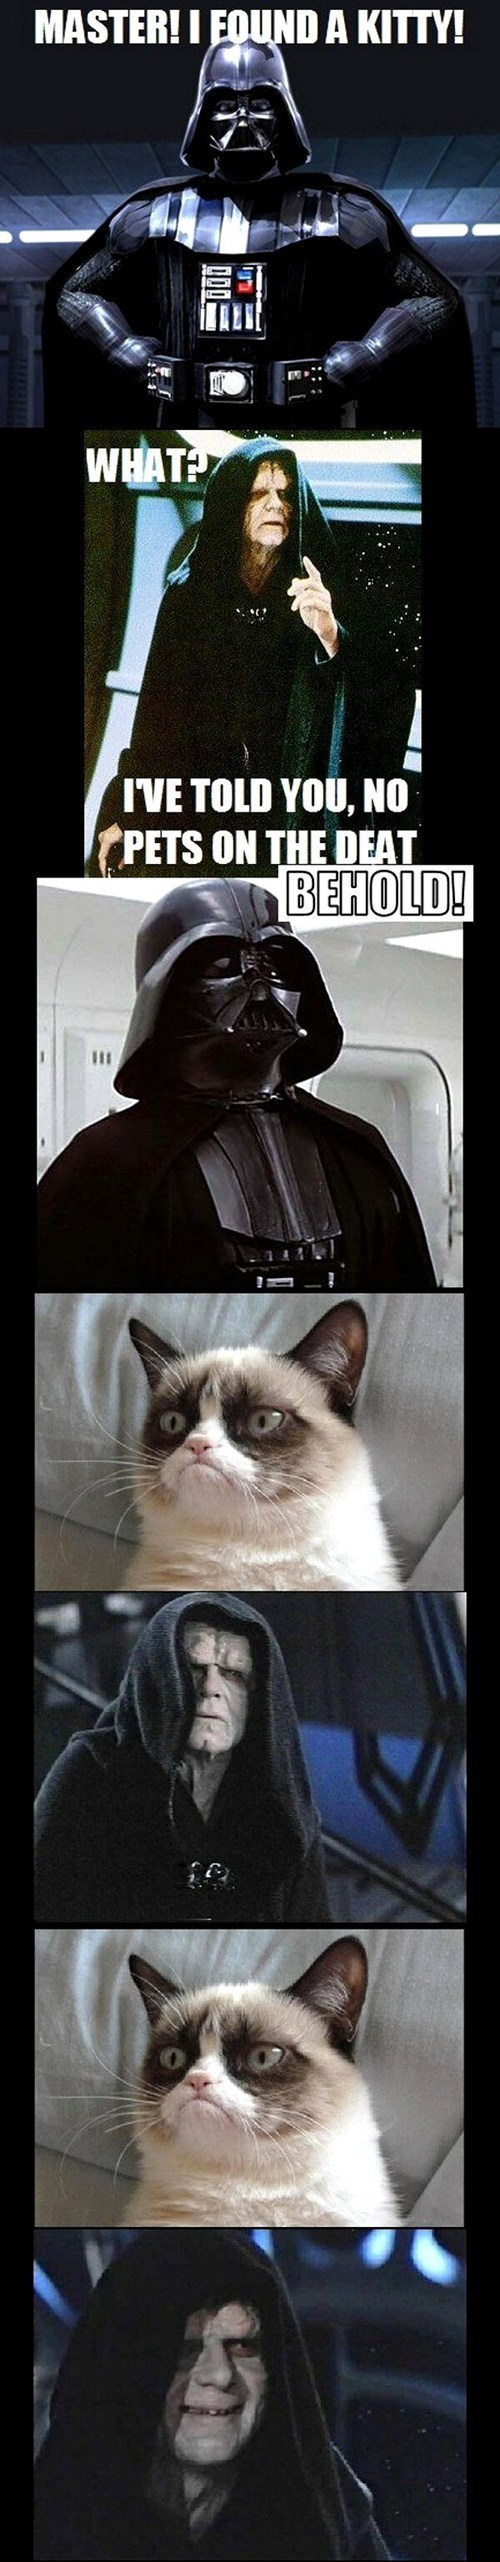 Grumpy Cat Joins the Dark Side